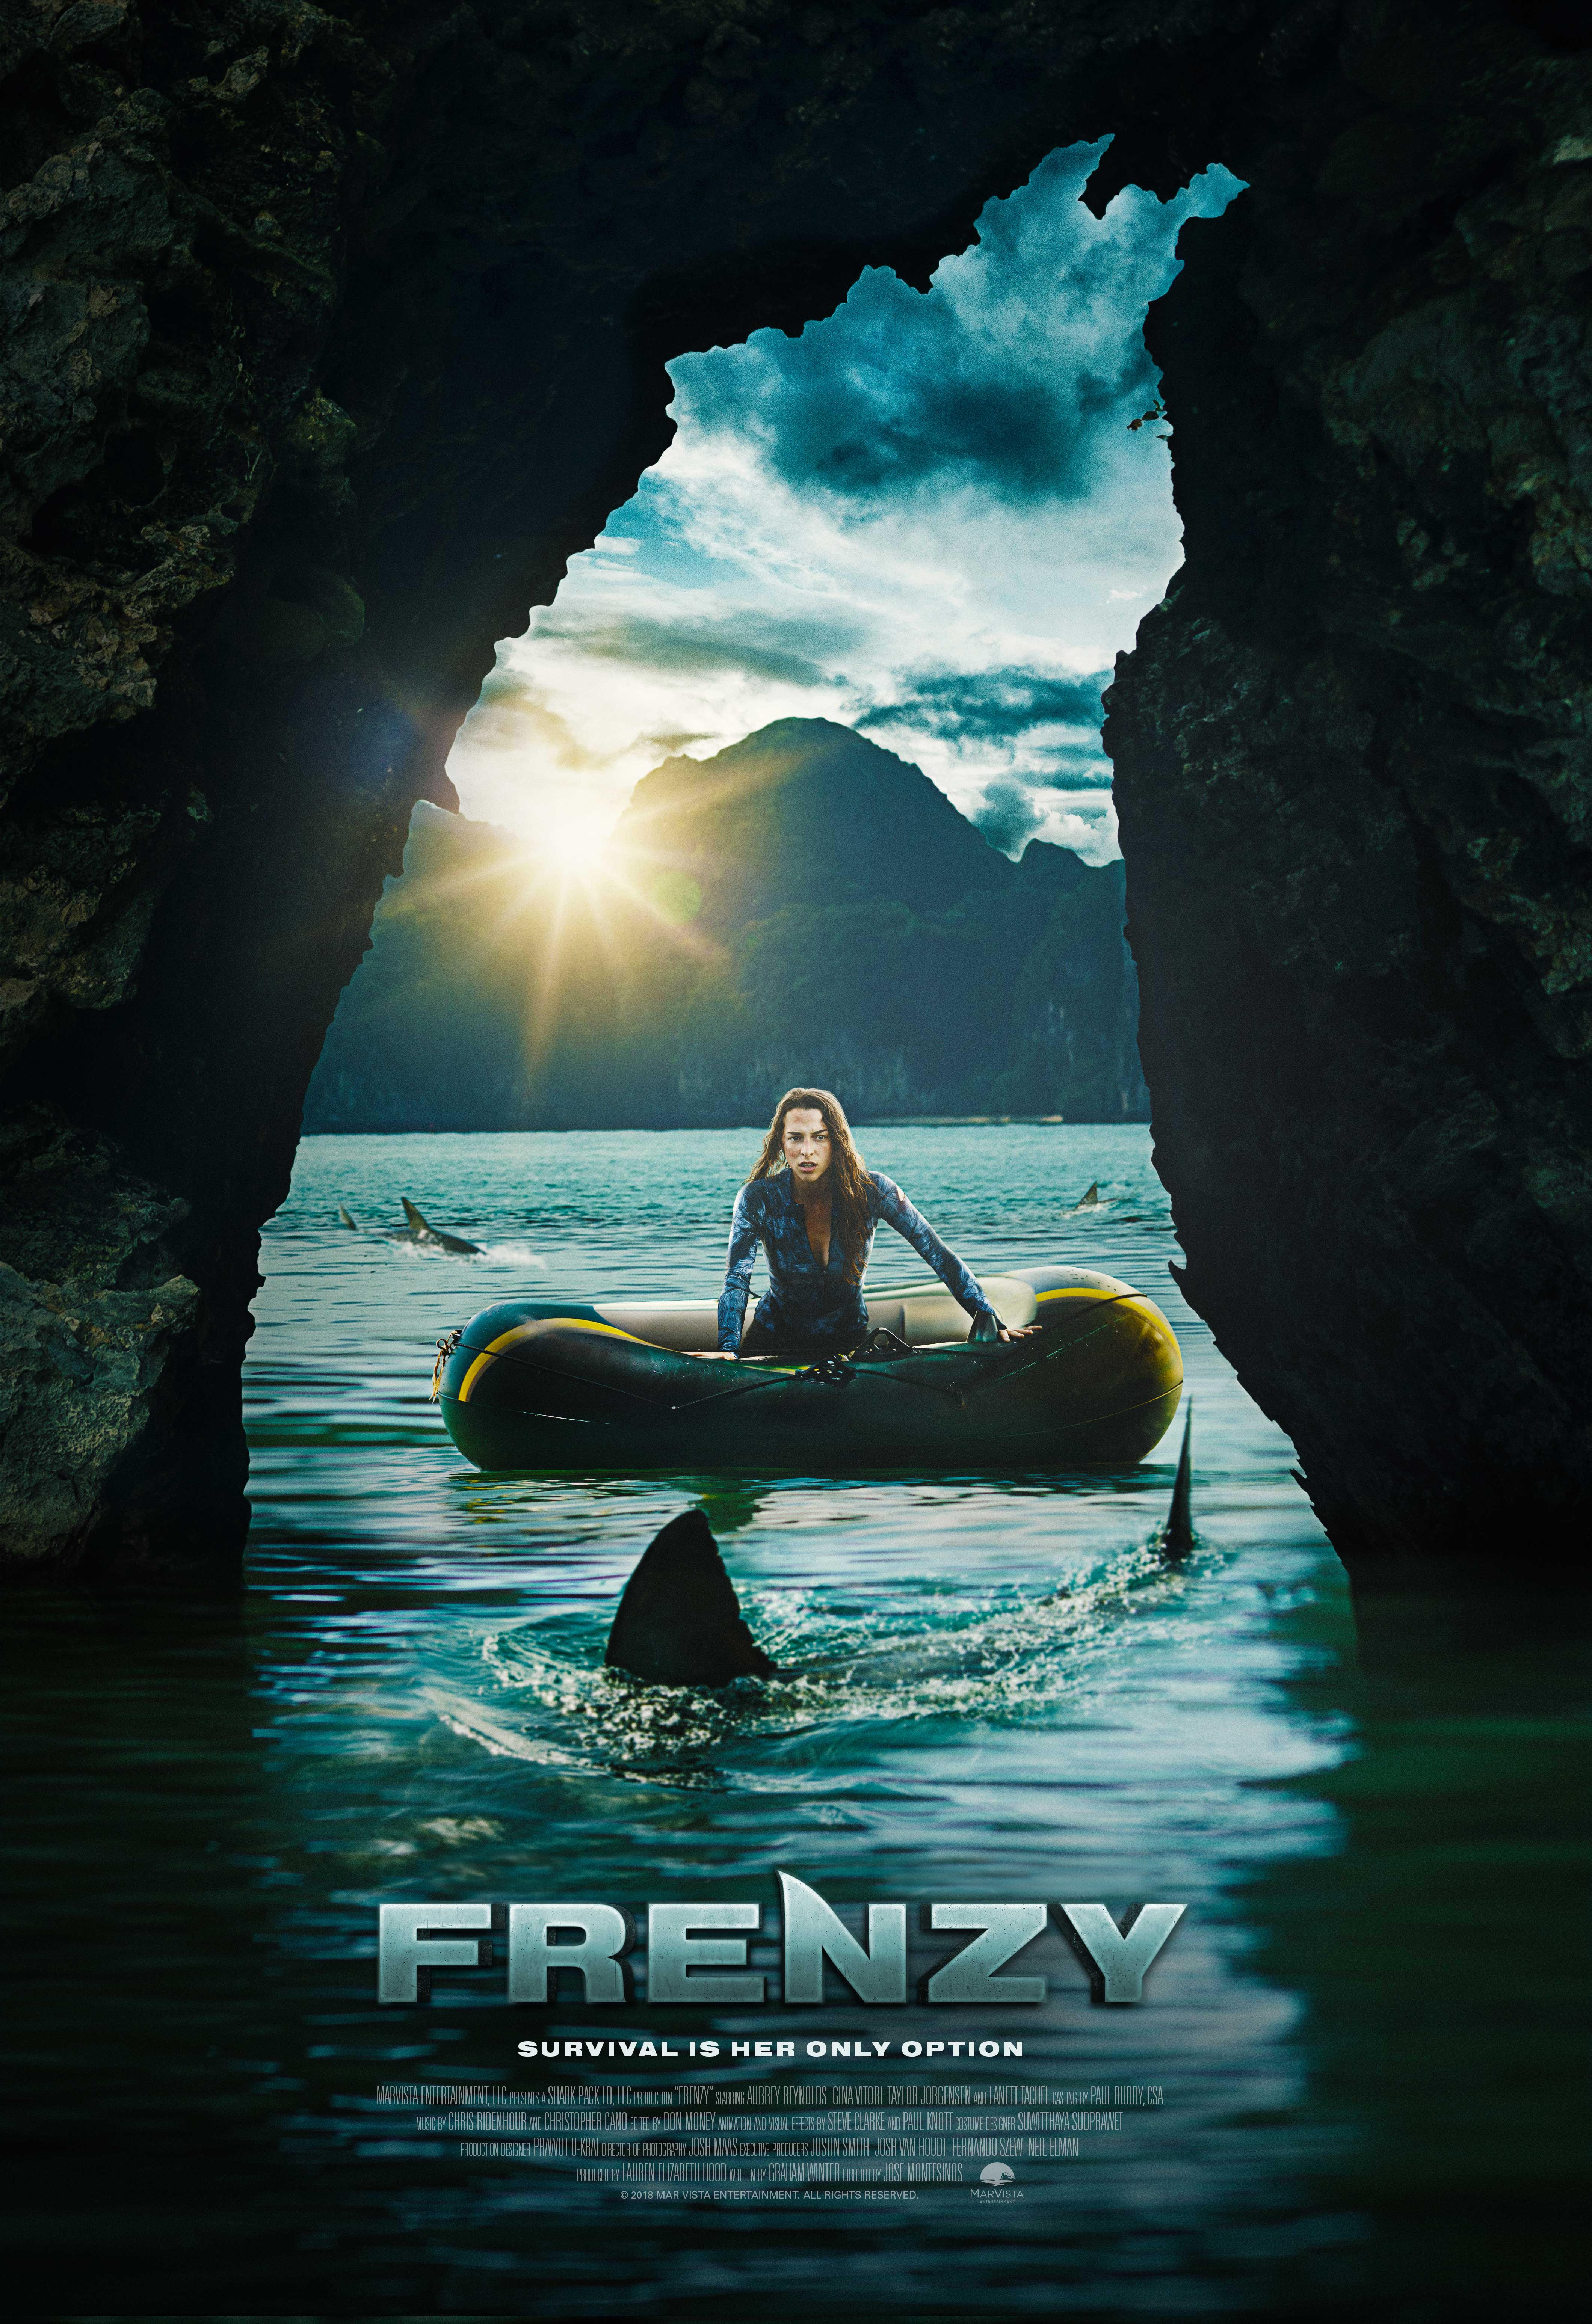 Frenzy (TV Movie 2018) - IMDb